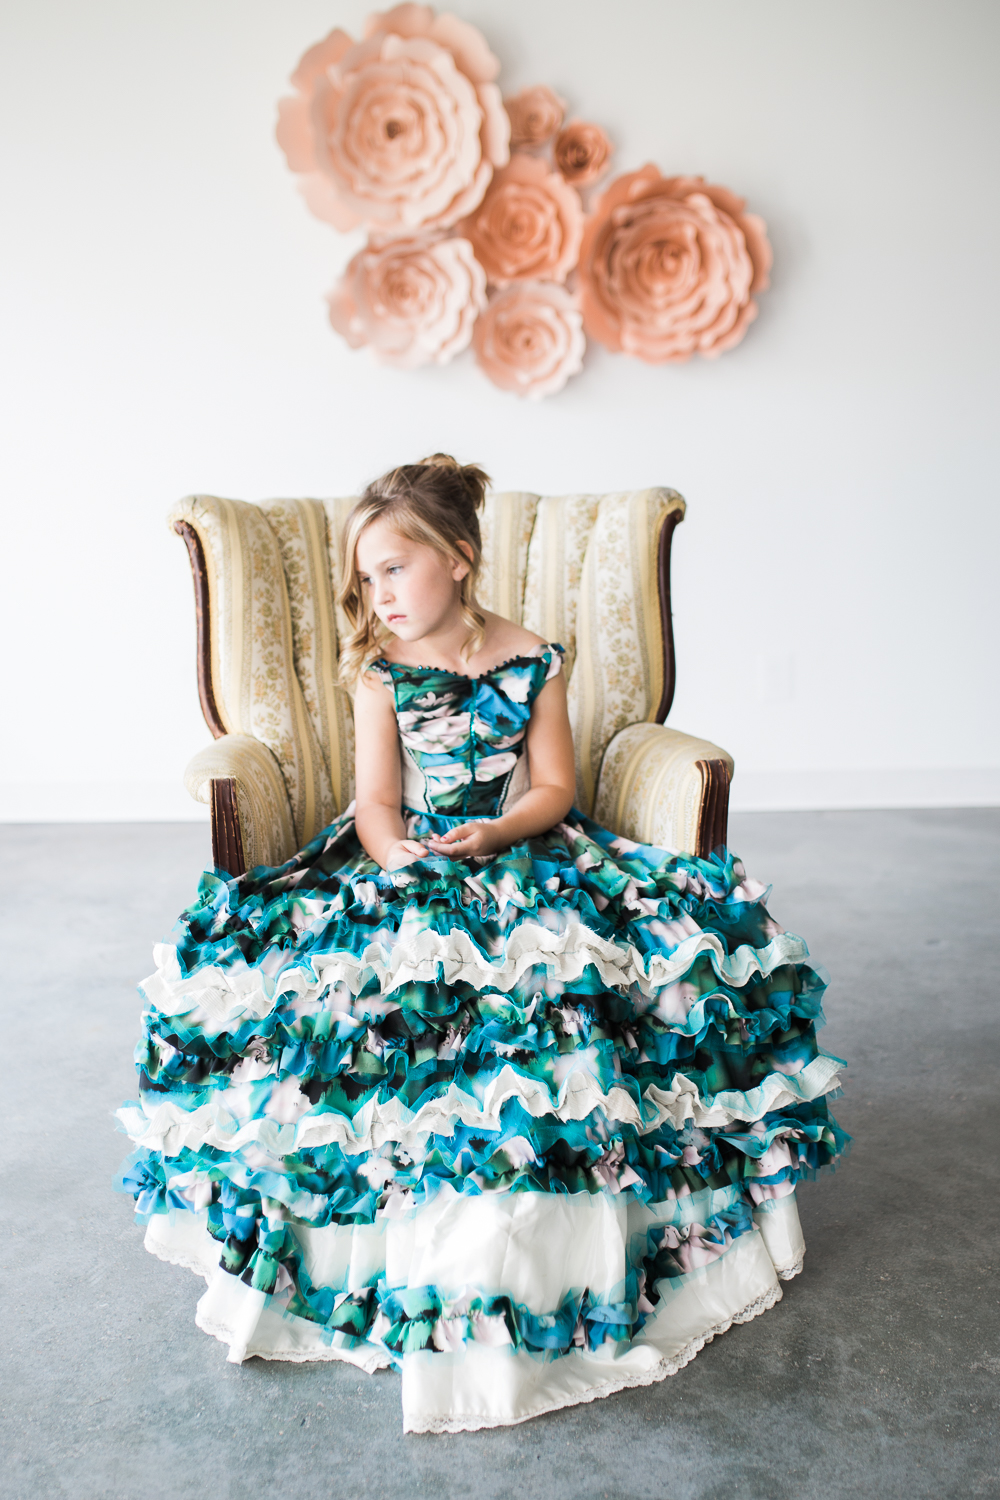 Indoor studio image of a little girl sitting in a vintage chair wearing a floor length silk gown.